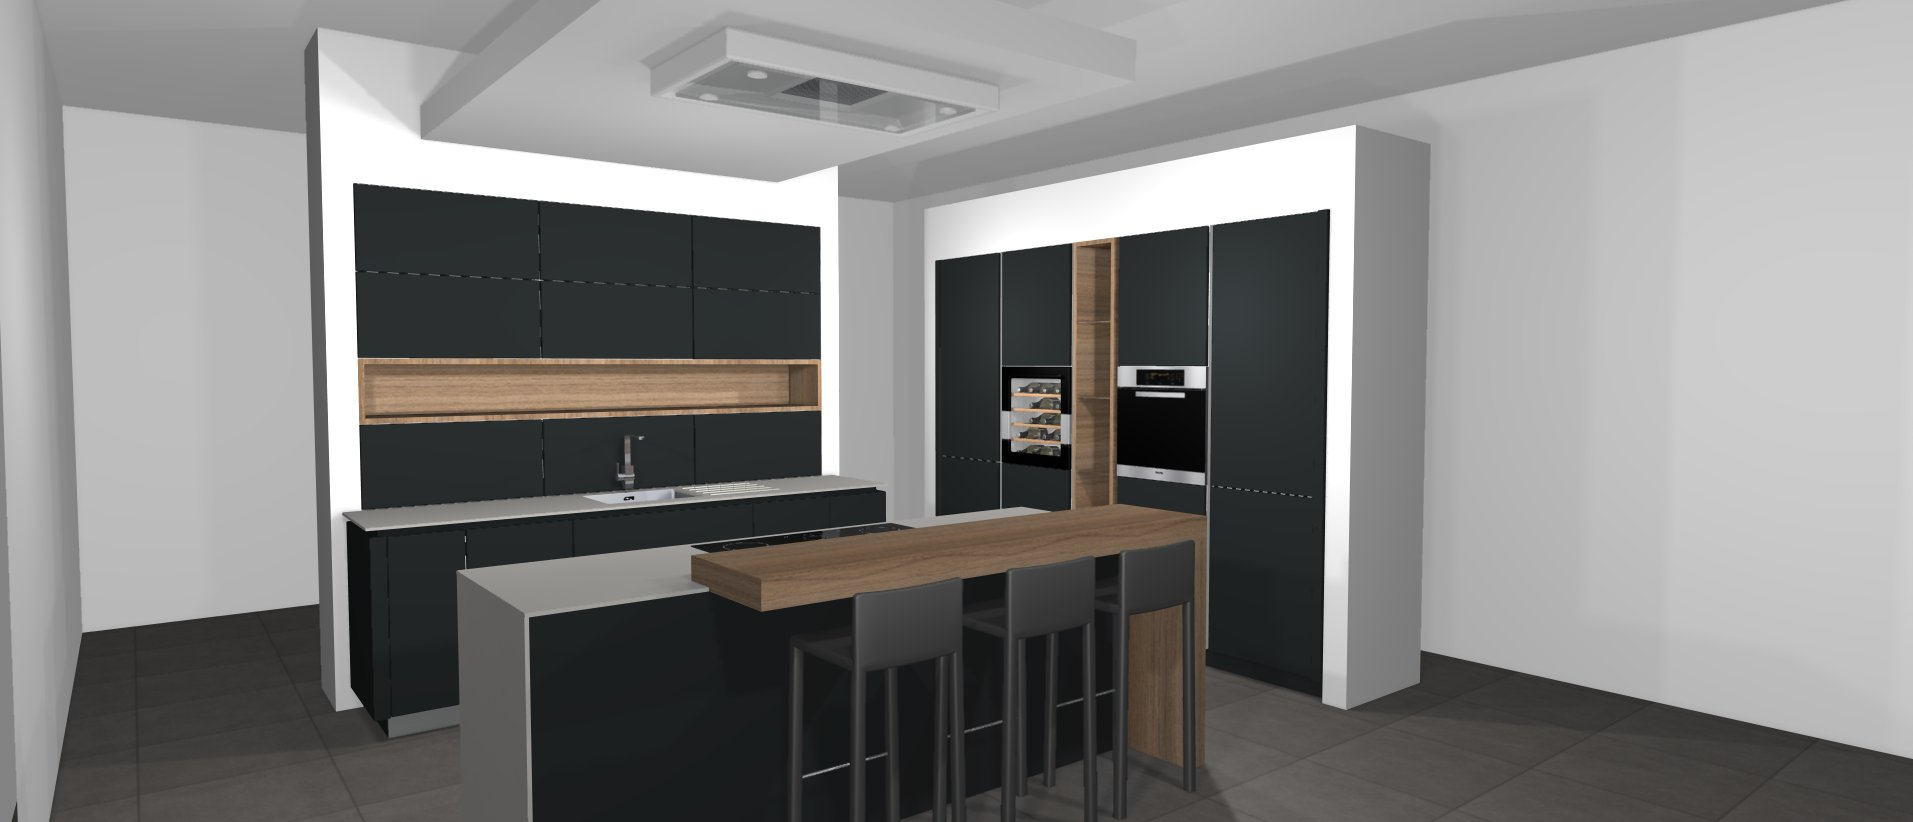 nouvelle cuisine d 39 exposition kreatis cuisine bain dressing m con. Black Bedroom Furniture Sets. Home Design Ideas